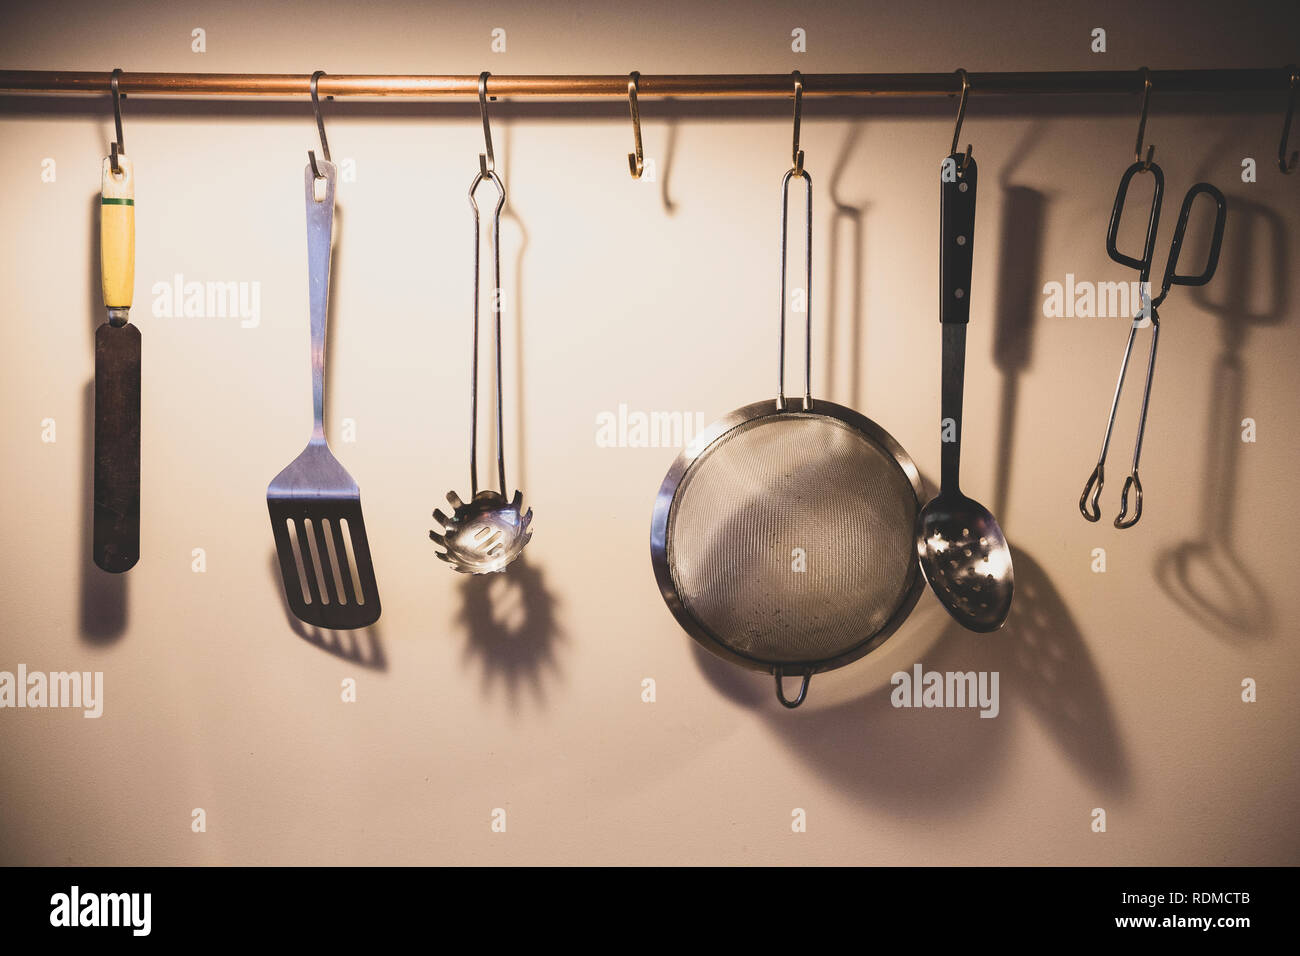 Close Up Of Kitchen Utensils Suspended From Copper Pipe Stock Photo Alamy